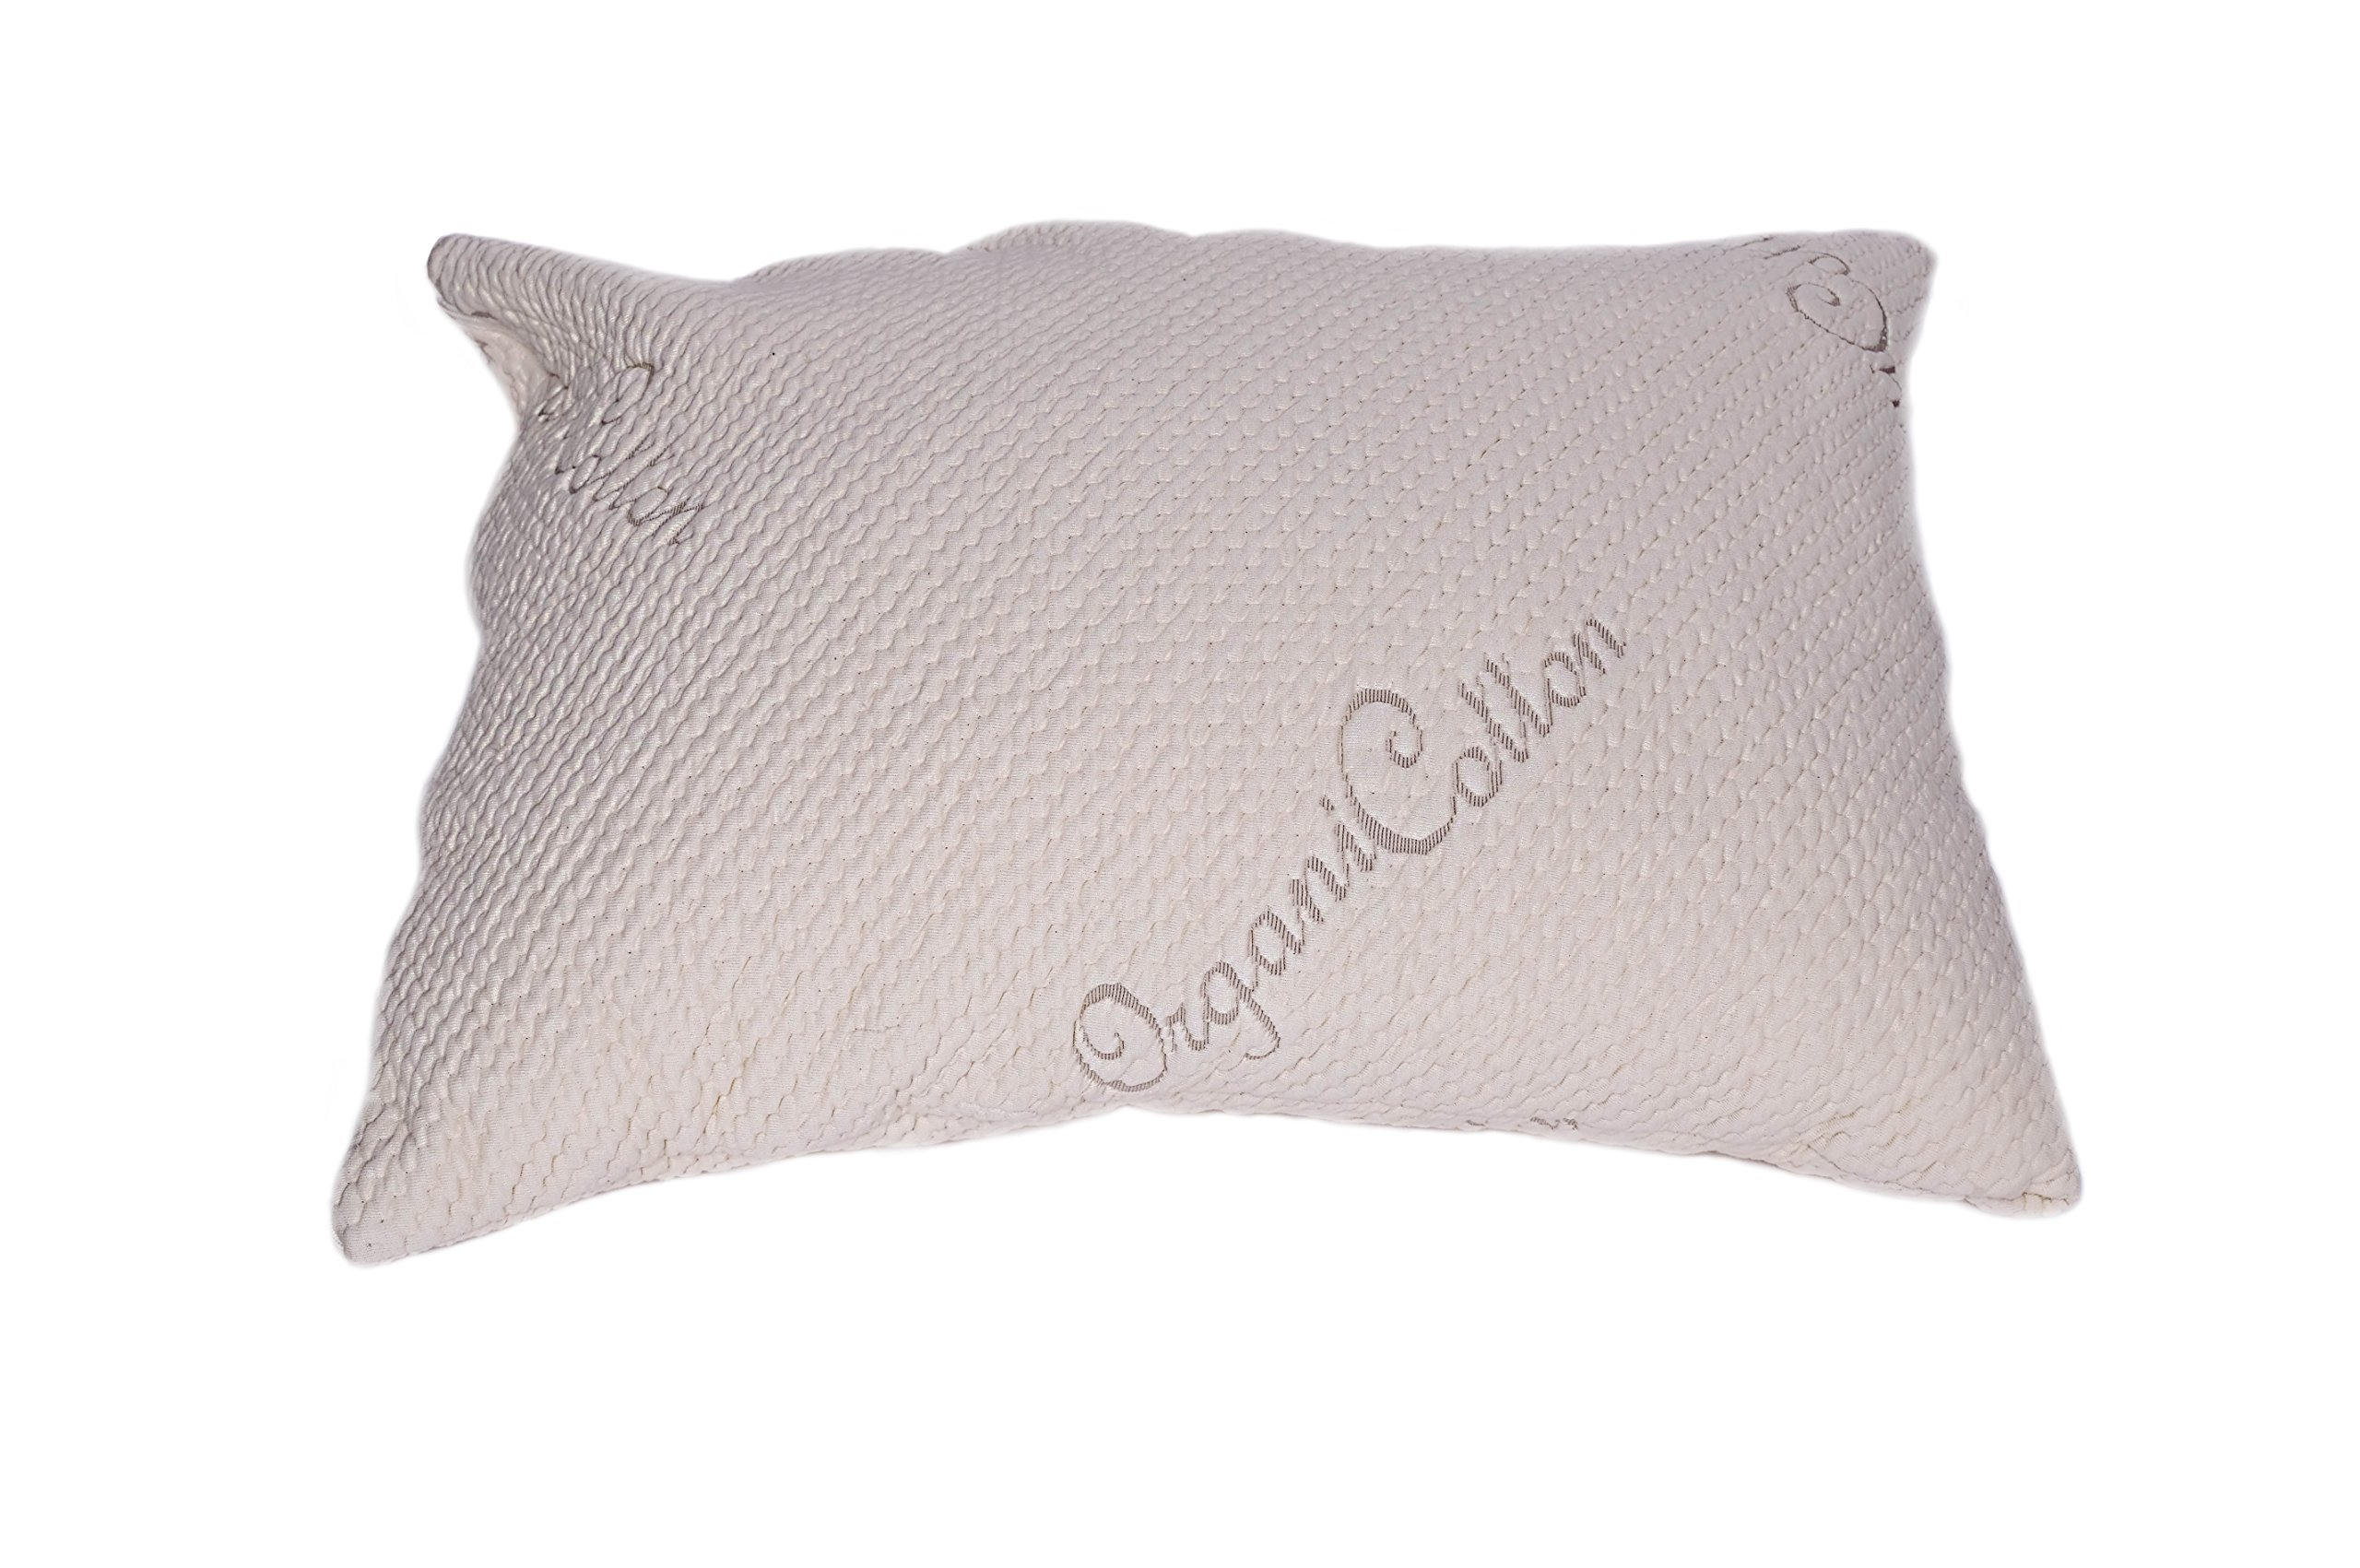 V&R Natural Queen Pillow - Organic Cotton Cover - Fill Latex Noodles (100%)